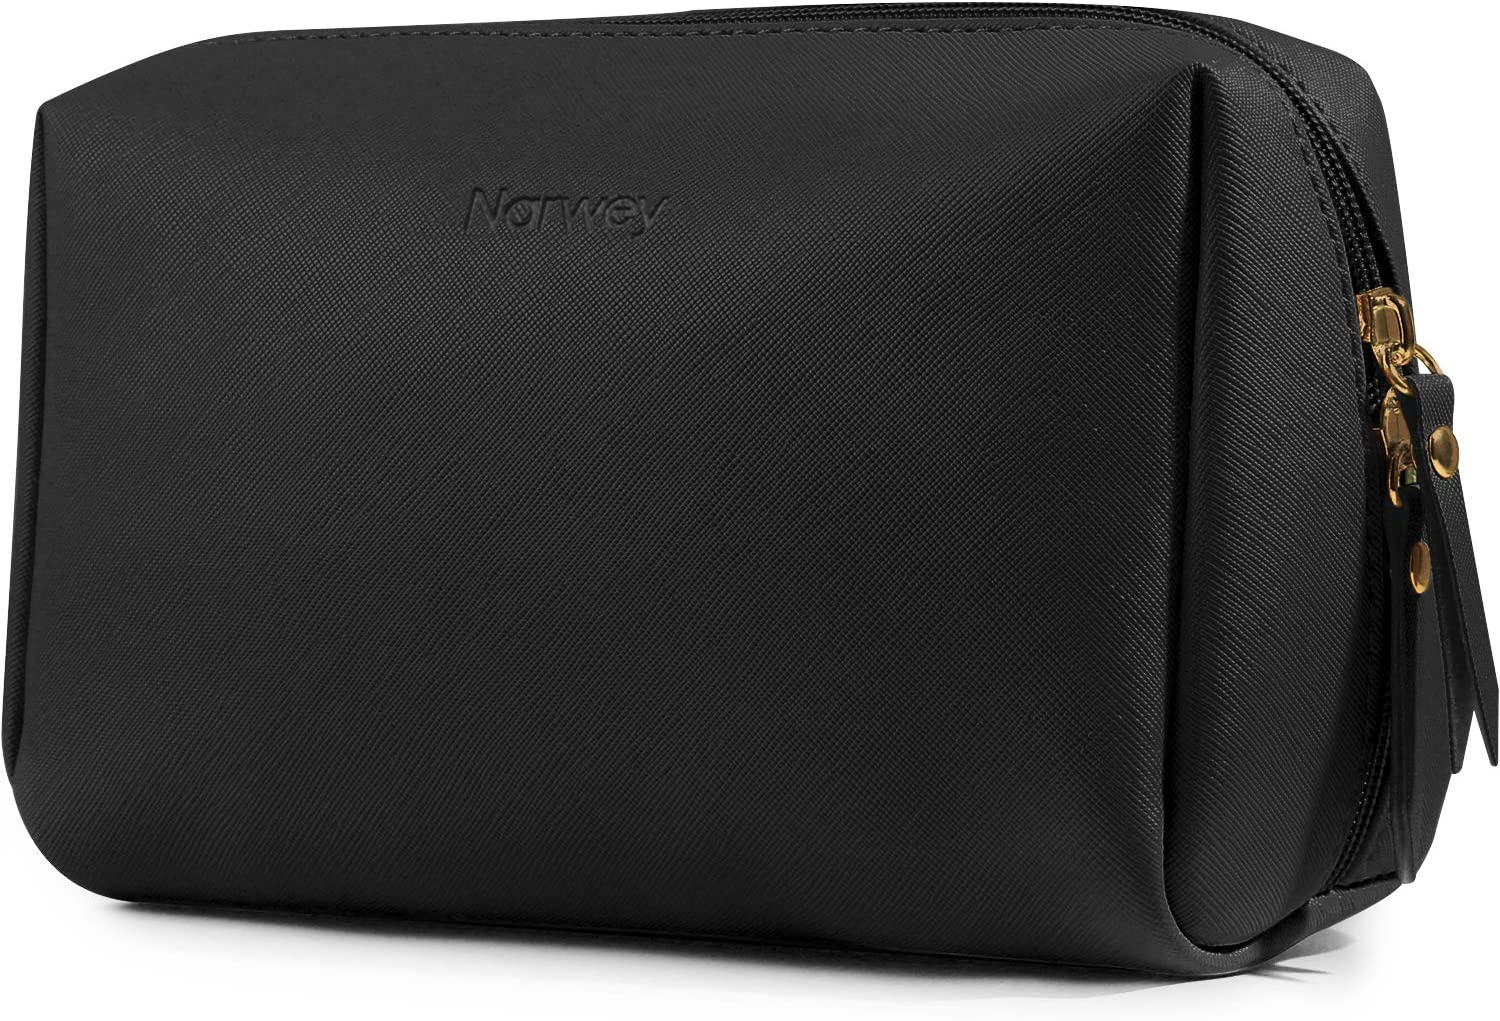 Large Vegan Leather Makeup Bag Zipper Pouch Travel Cosmetic Organizer for Women and Girls (Large, Black)